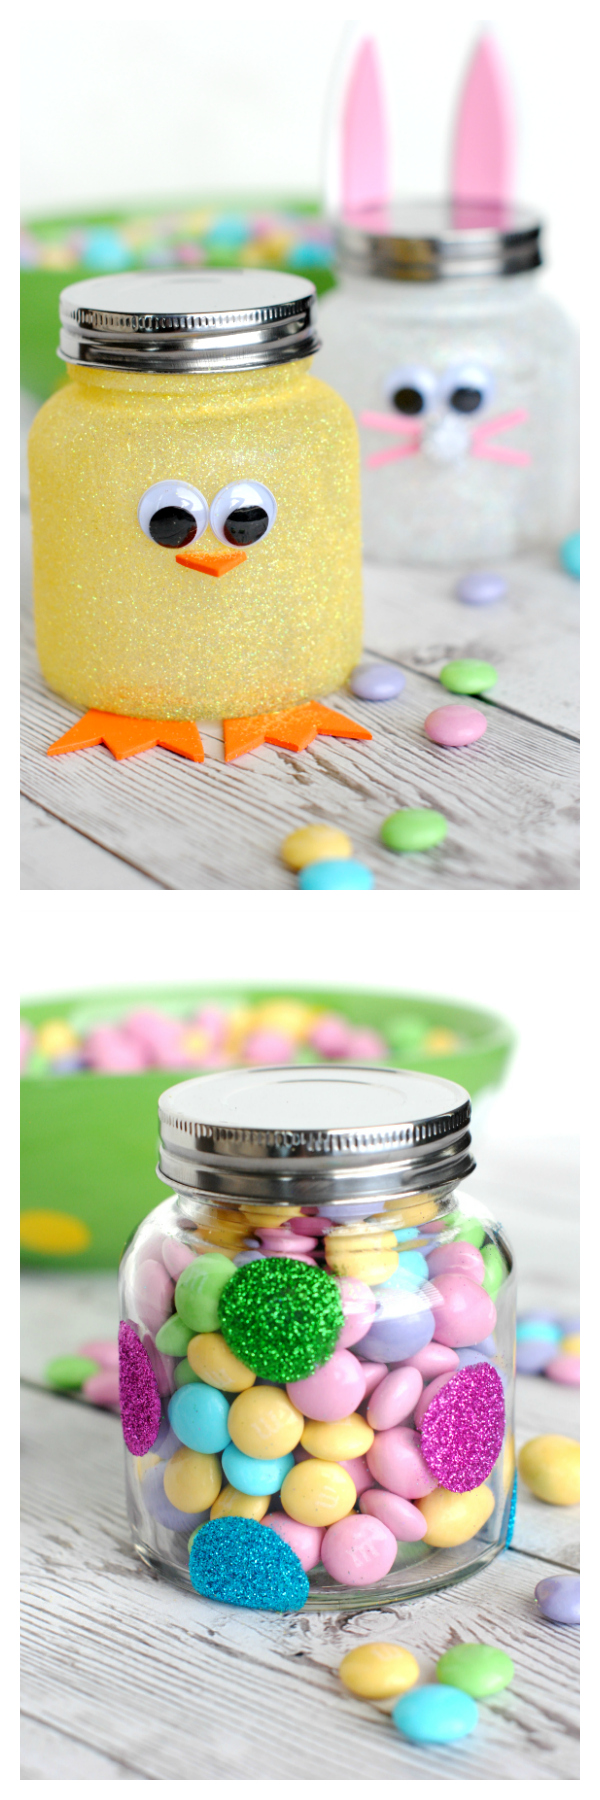 Easter Candy Jars-Cute Easter Craft or Gift to Give a Friend #easter #eastercrafts